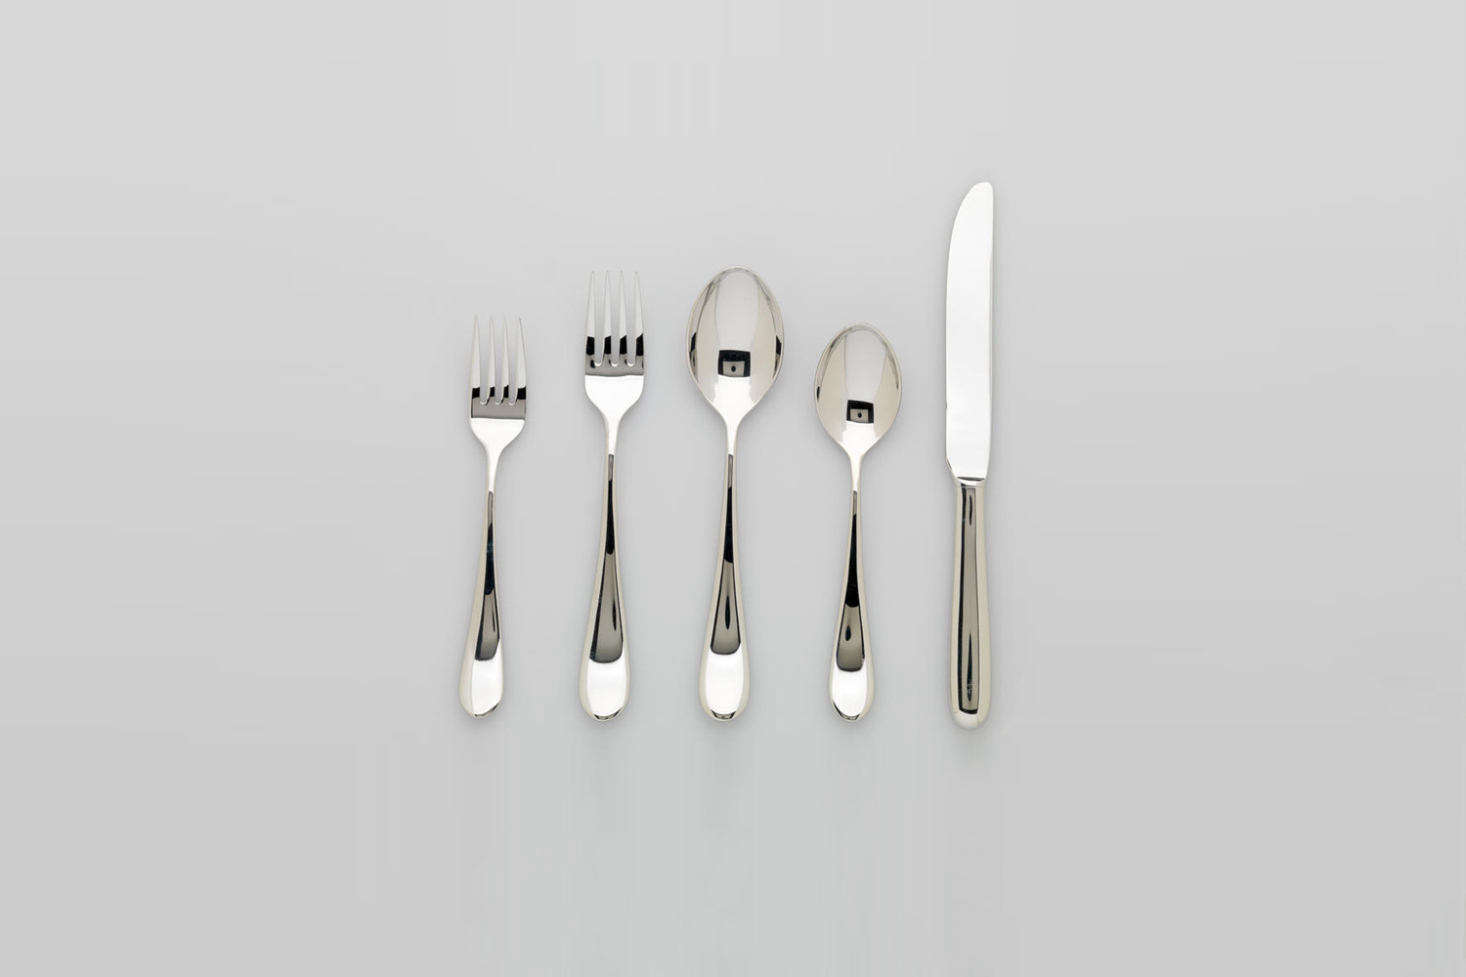 While it's no longer in production, Massimo and Lella Vignelli's Sasaki Basic Flatware set is worth a mention (you can still find pieces or full sets on Replacements or eBay). It was designed by the duo in 1987 for Japanese company Sasaki. Photograph from the RISDI Museum. You can also find the set among our picks in 10 Easy Pieces: Everyday Stainless Steel Flatware.